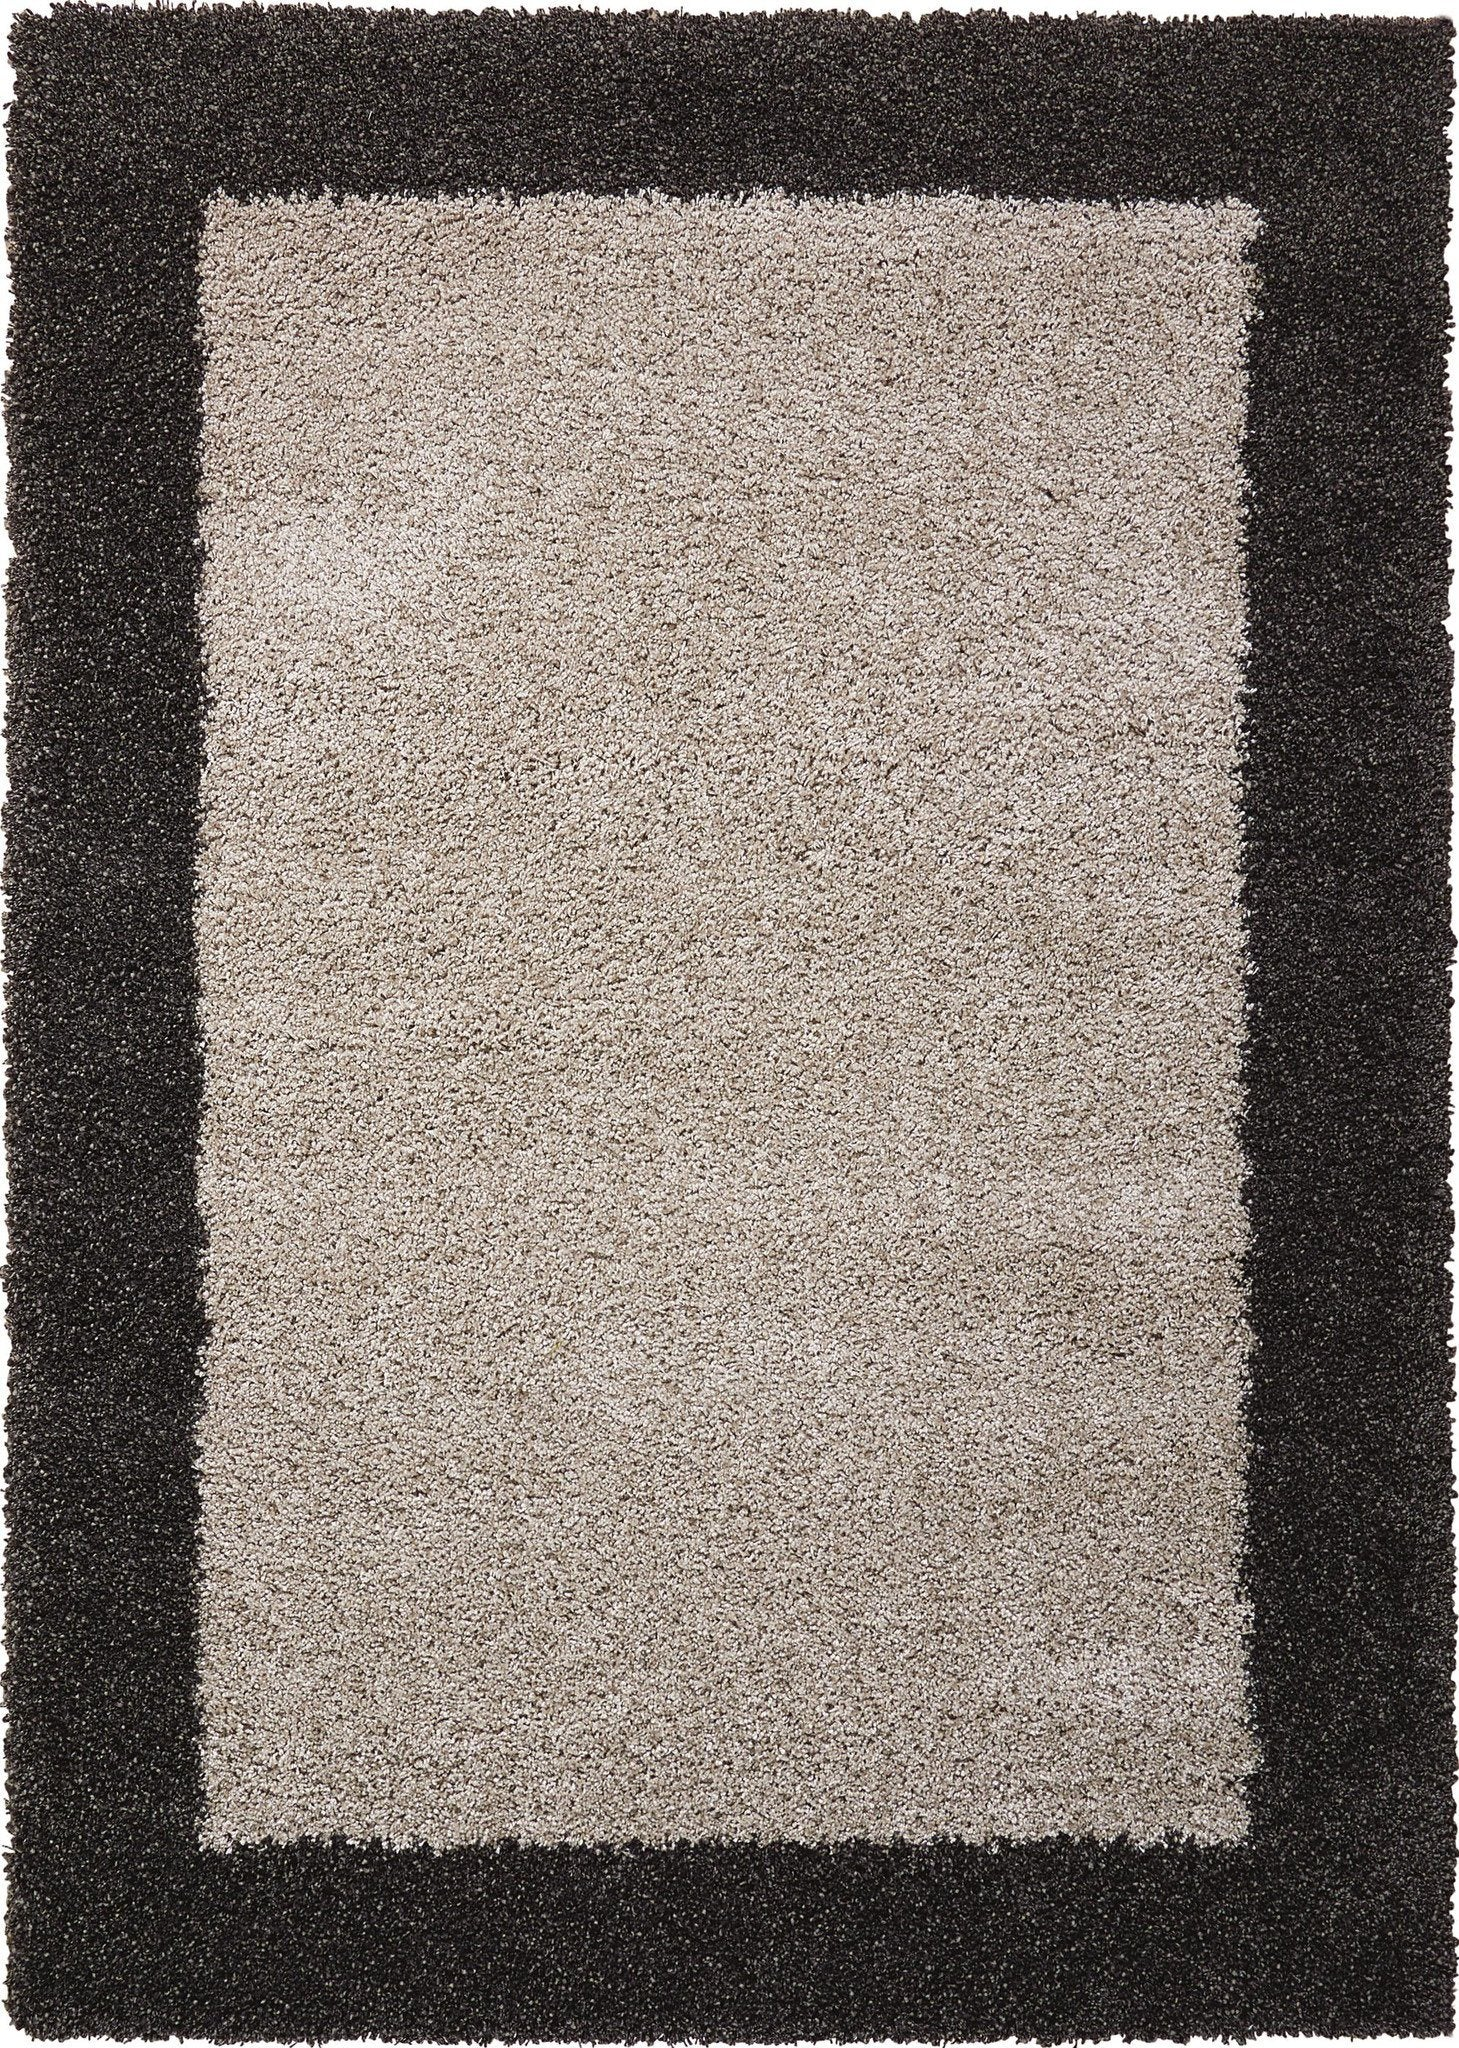 "Amore Silver/Charcoal Shag Area Rug 3'11"" x 5'11"" Rugs Nourison 3'11"" x 5'11"""